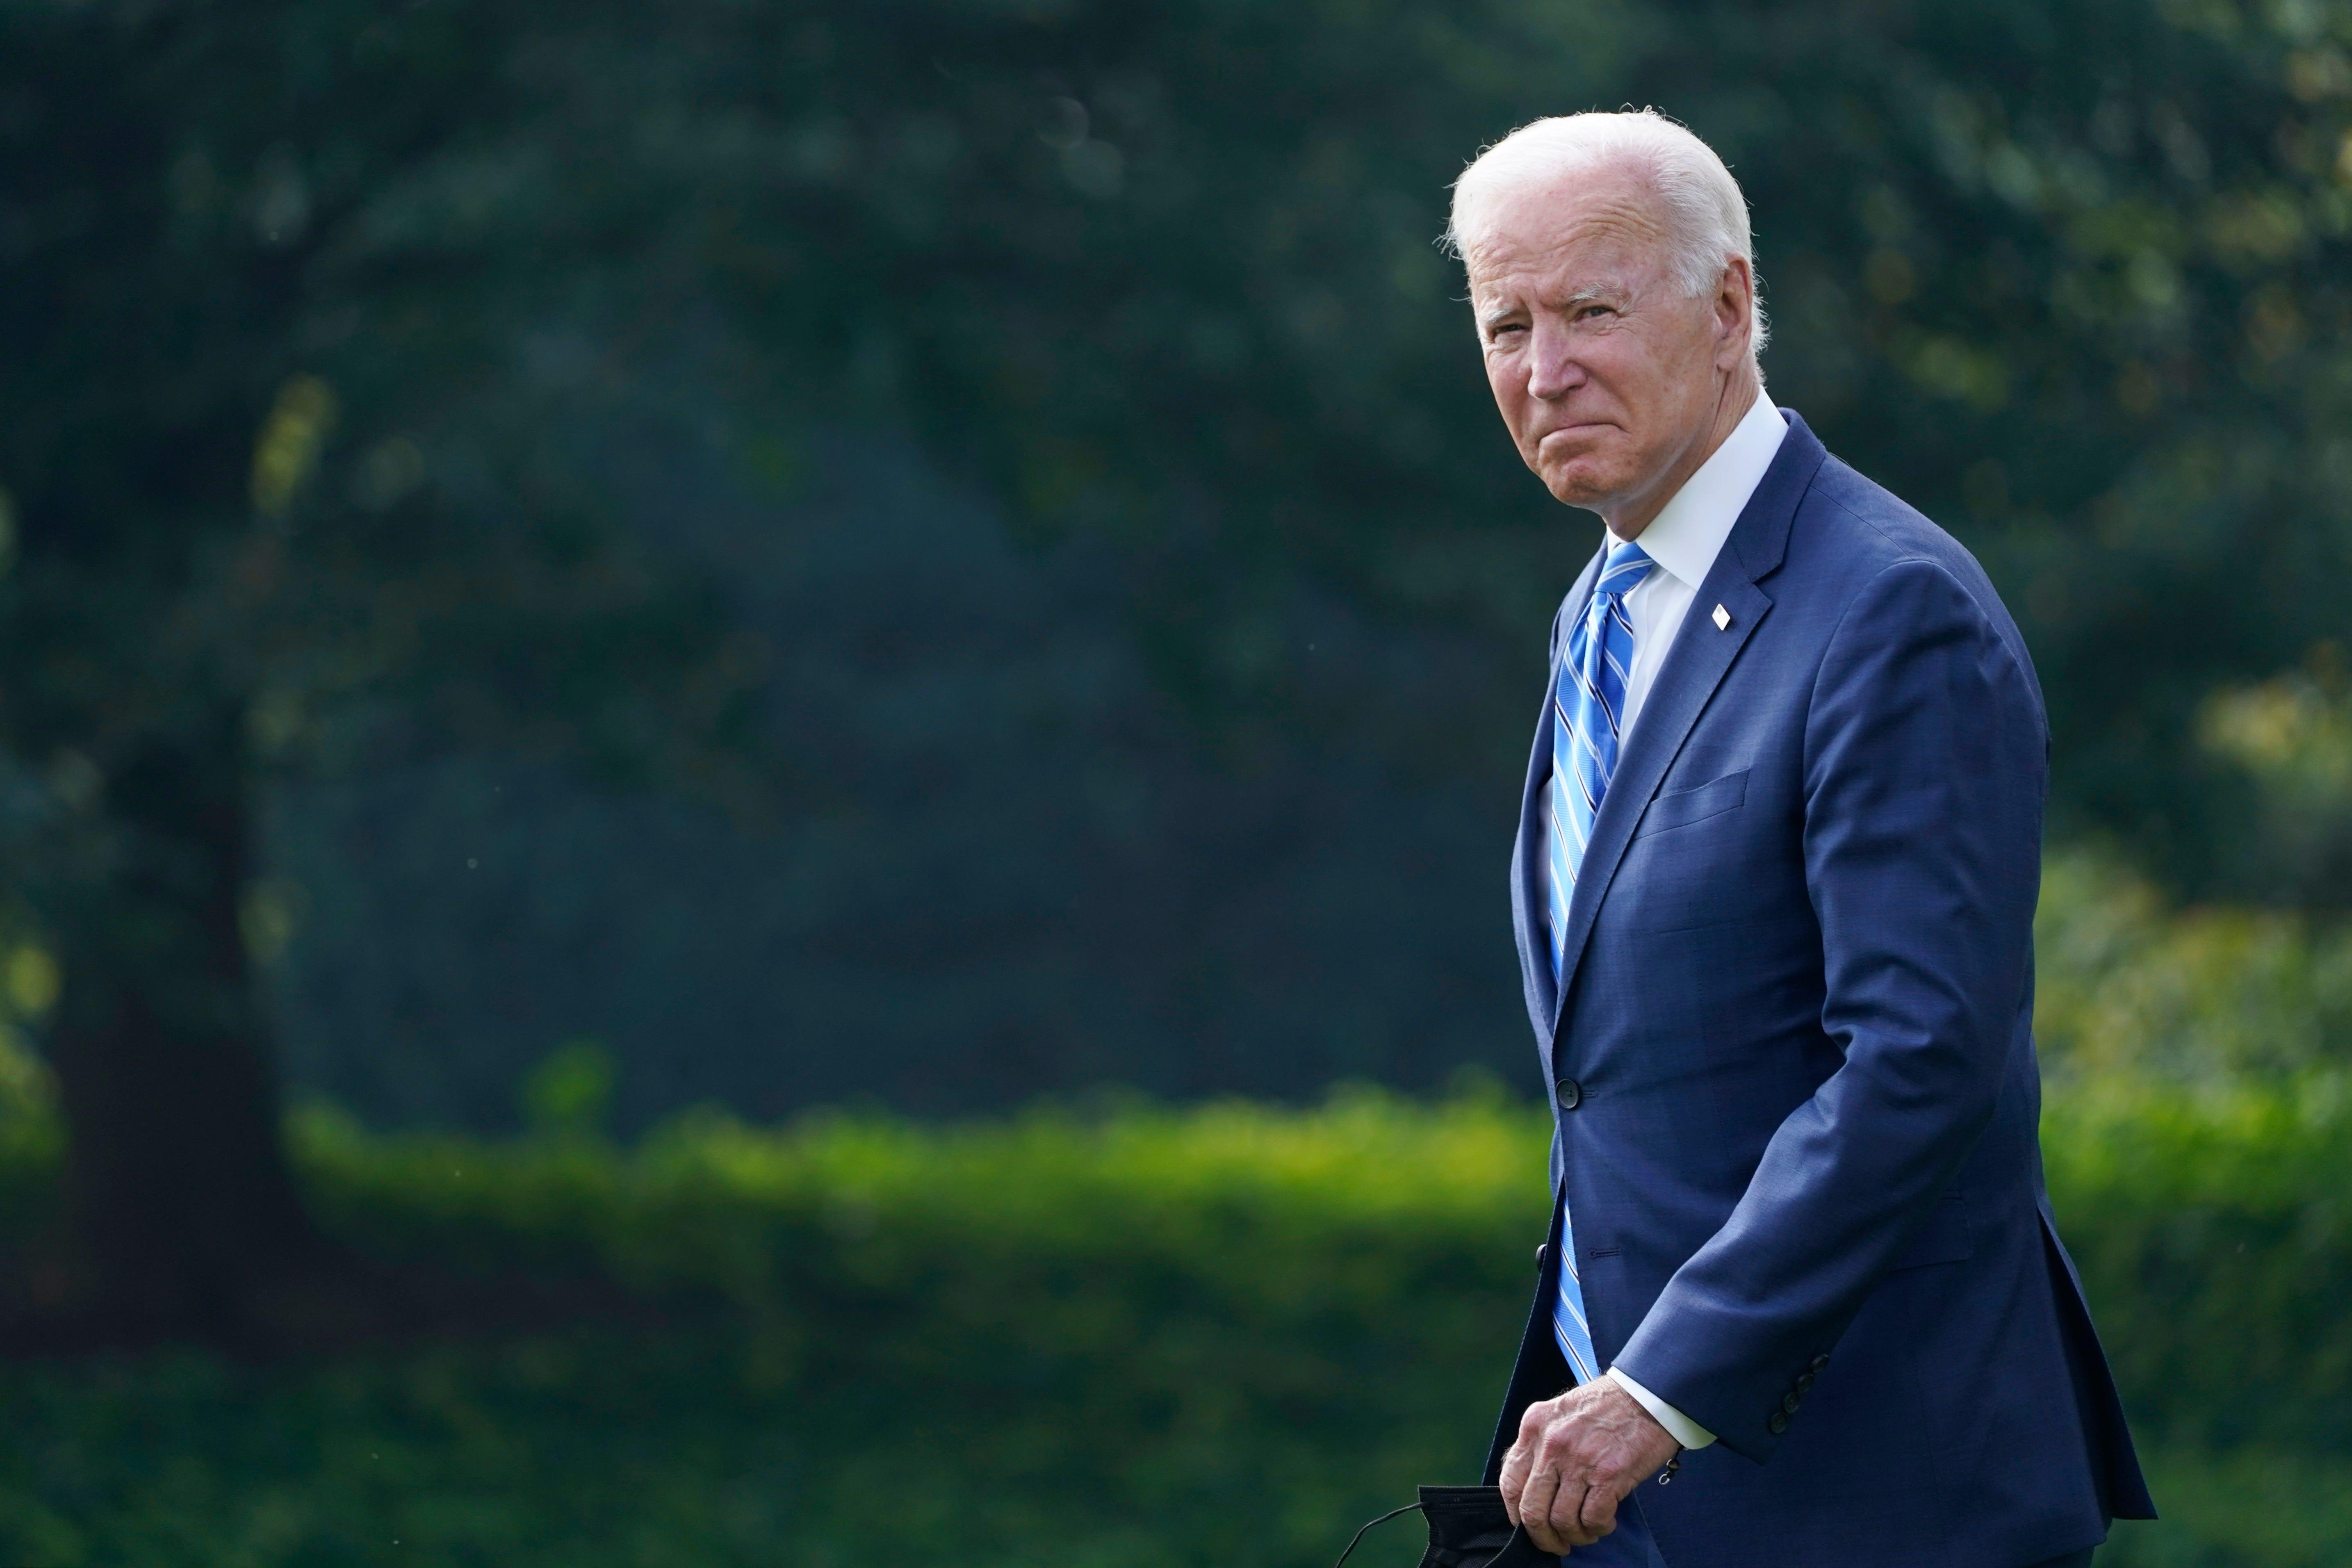 Biden, Pope Francis to discuss COVID-19, climate change other issues in meeting at the Vatican